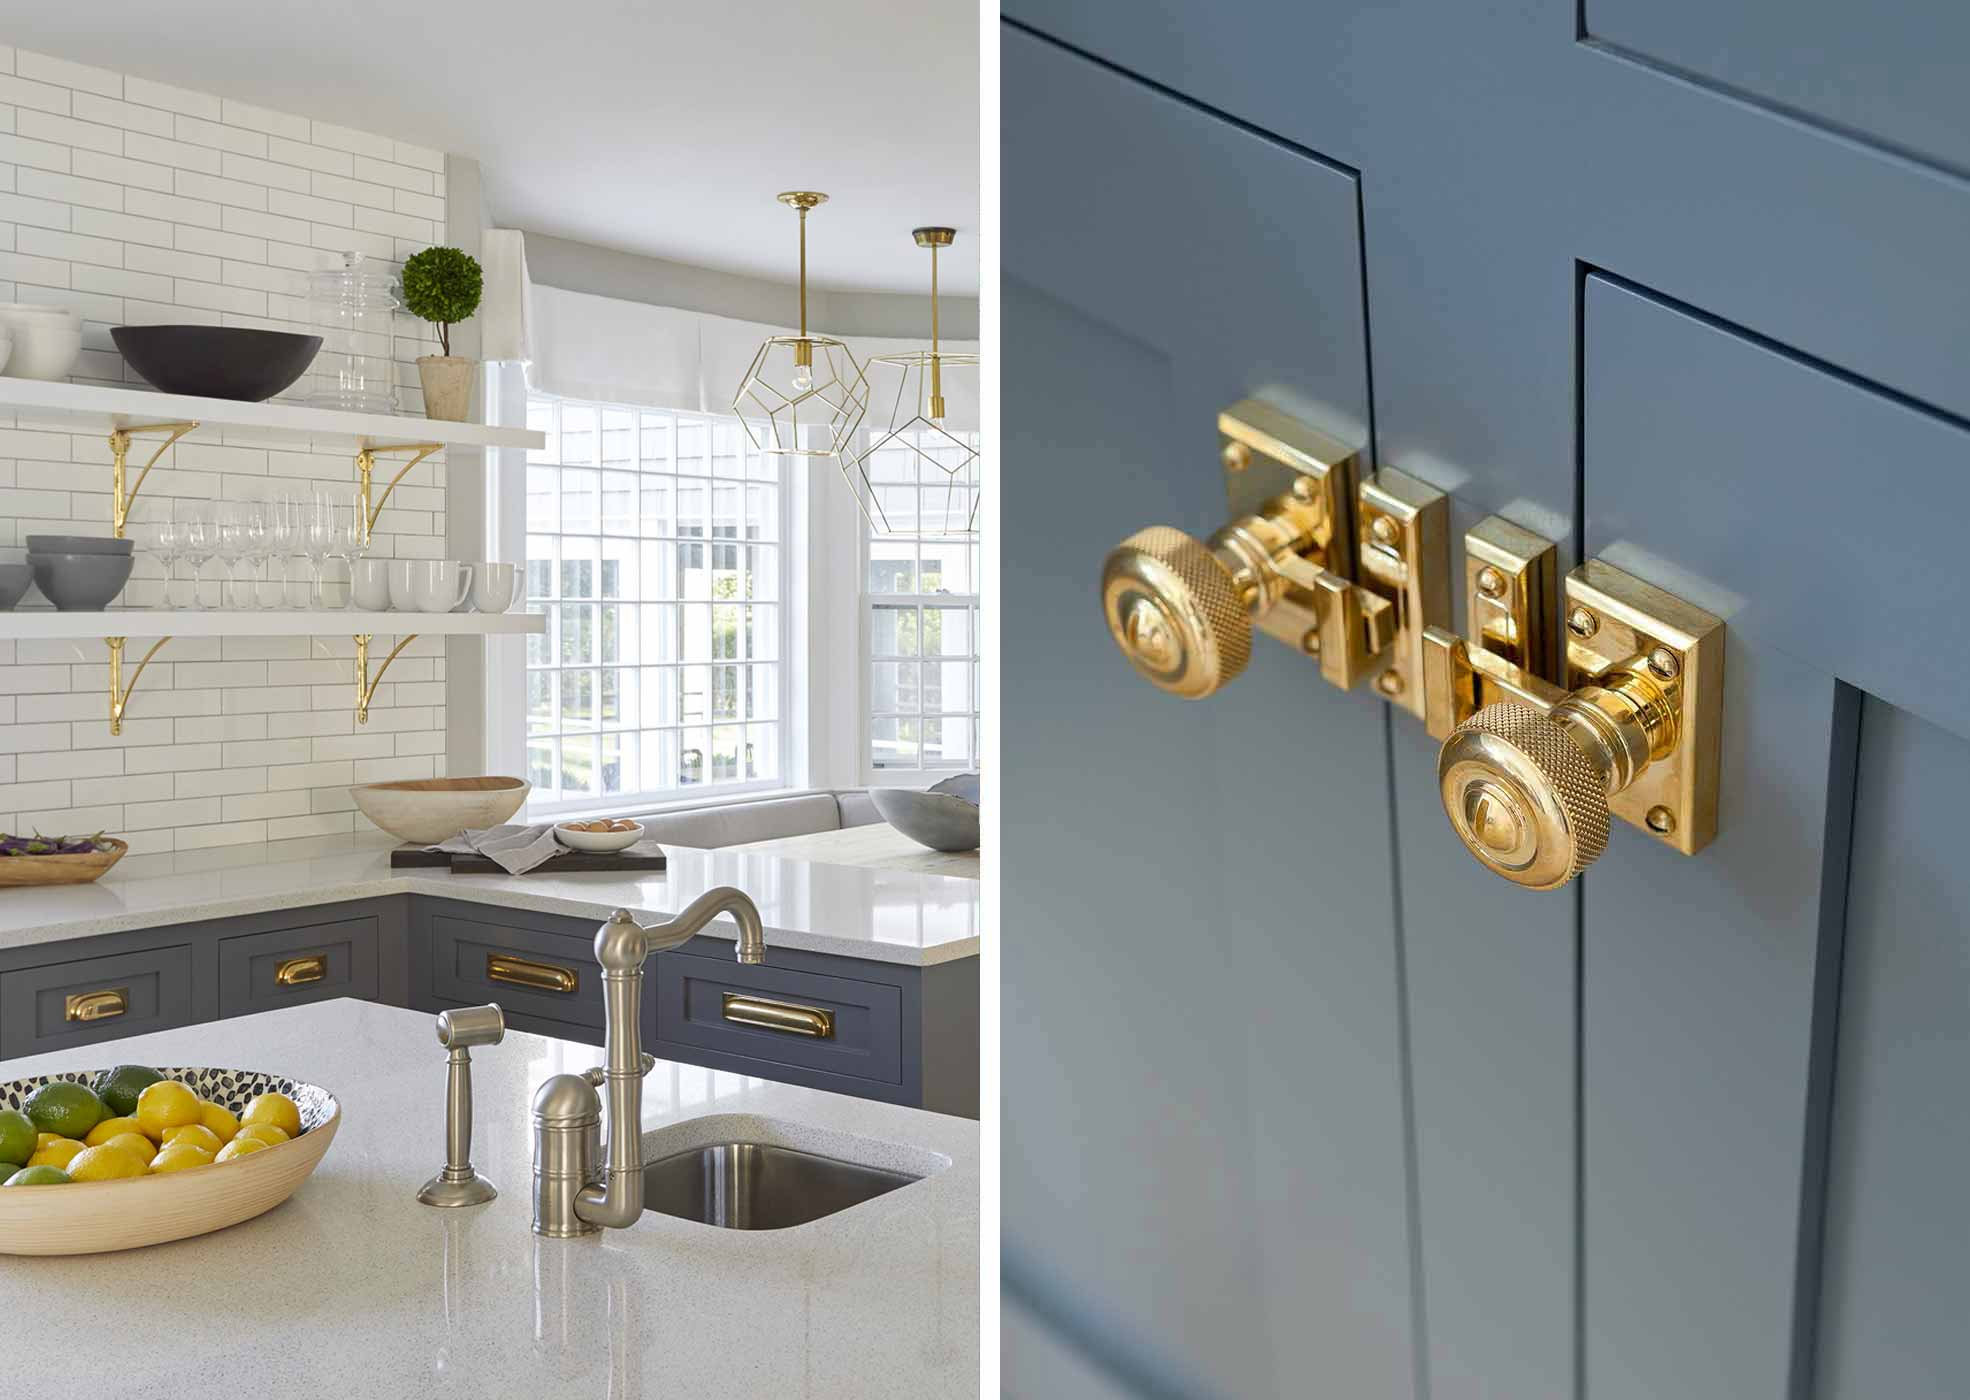 bridgehampton kitchen with brass hardware